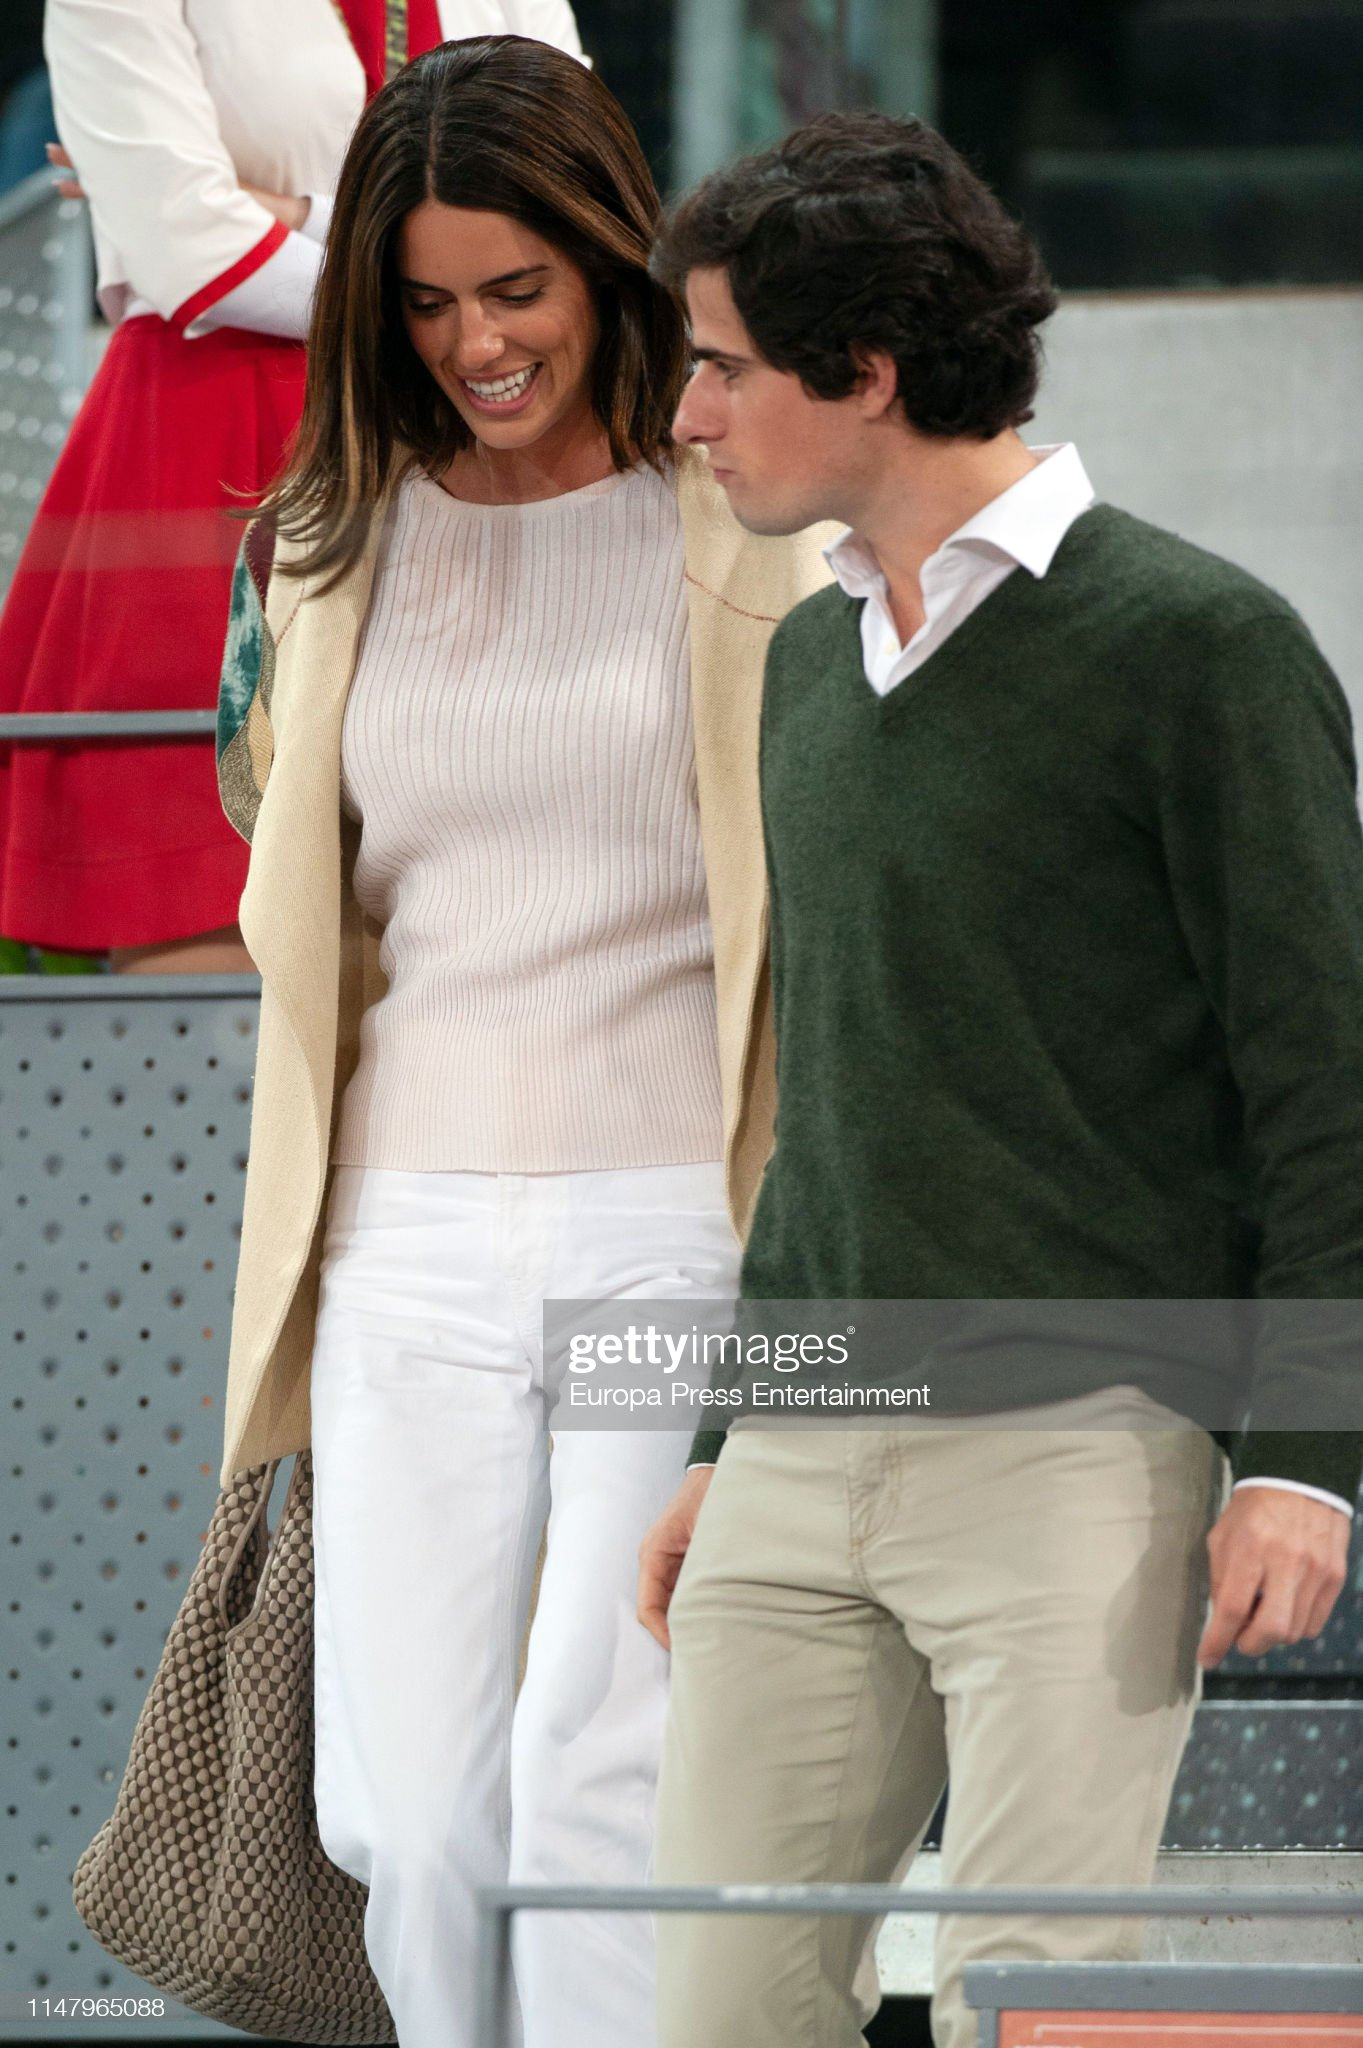 https://media.gettyimages.com/photos/fernando-martinez-de-irujo-and-sofia-palazuelo-attend-mutua-madrid-picture-id1147965088?s=2048x2048